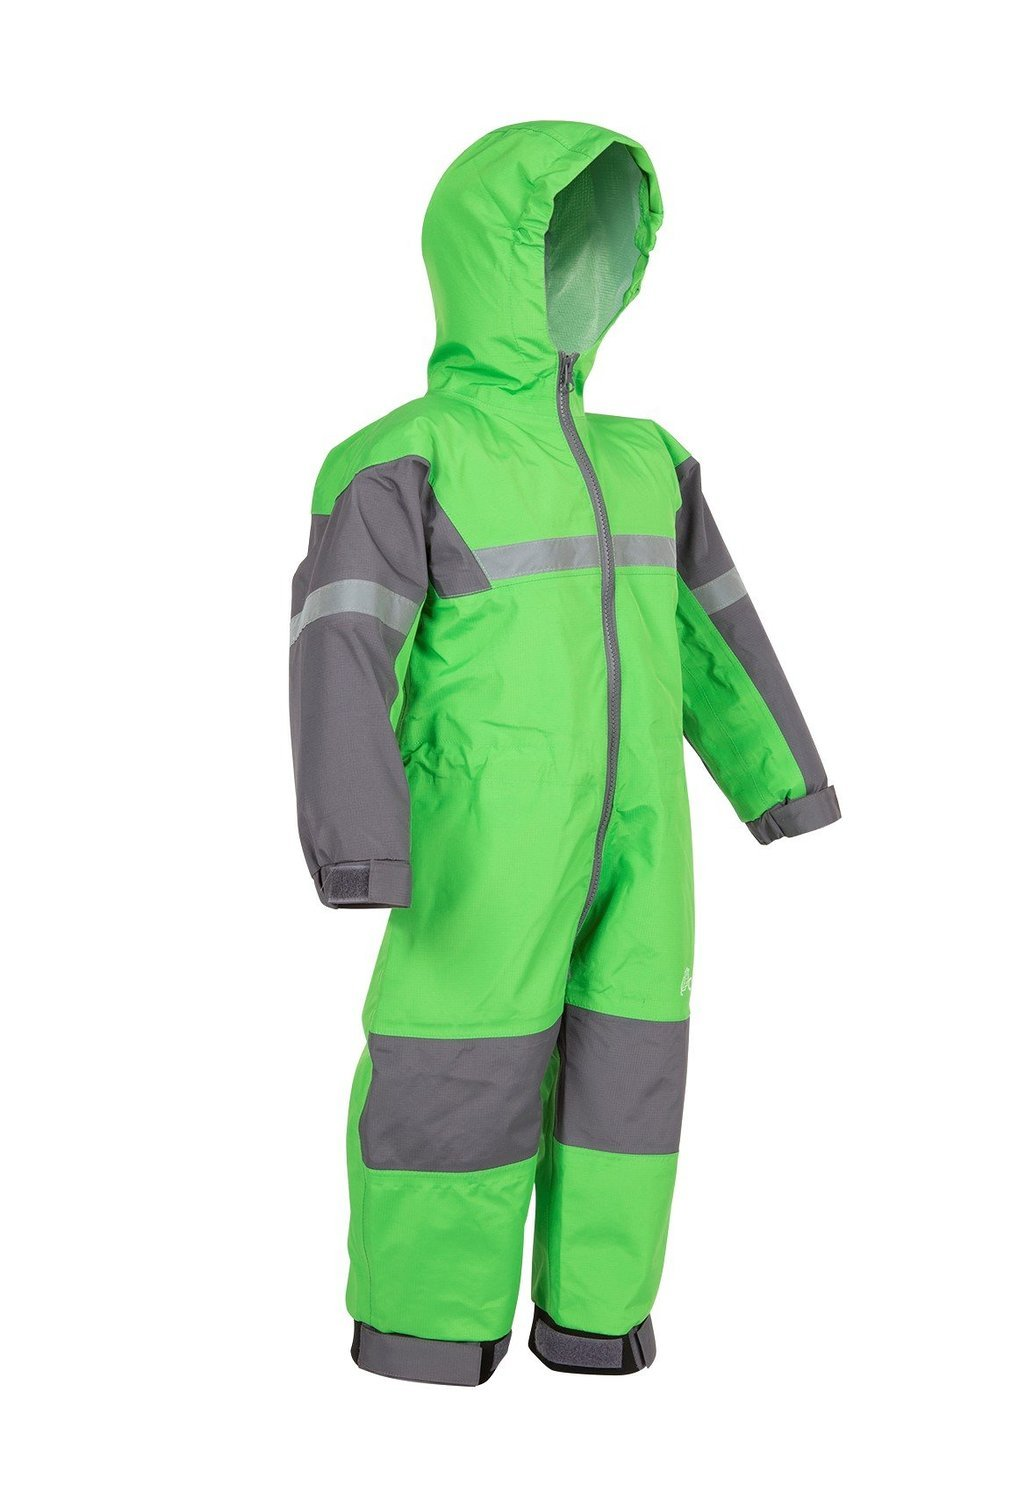 OAKI Rain Suit Kids - Toddler Snowsuit - One Piece Rain Jacket/Pant for Girls & Boys, Classic Green, 4